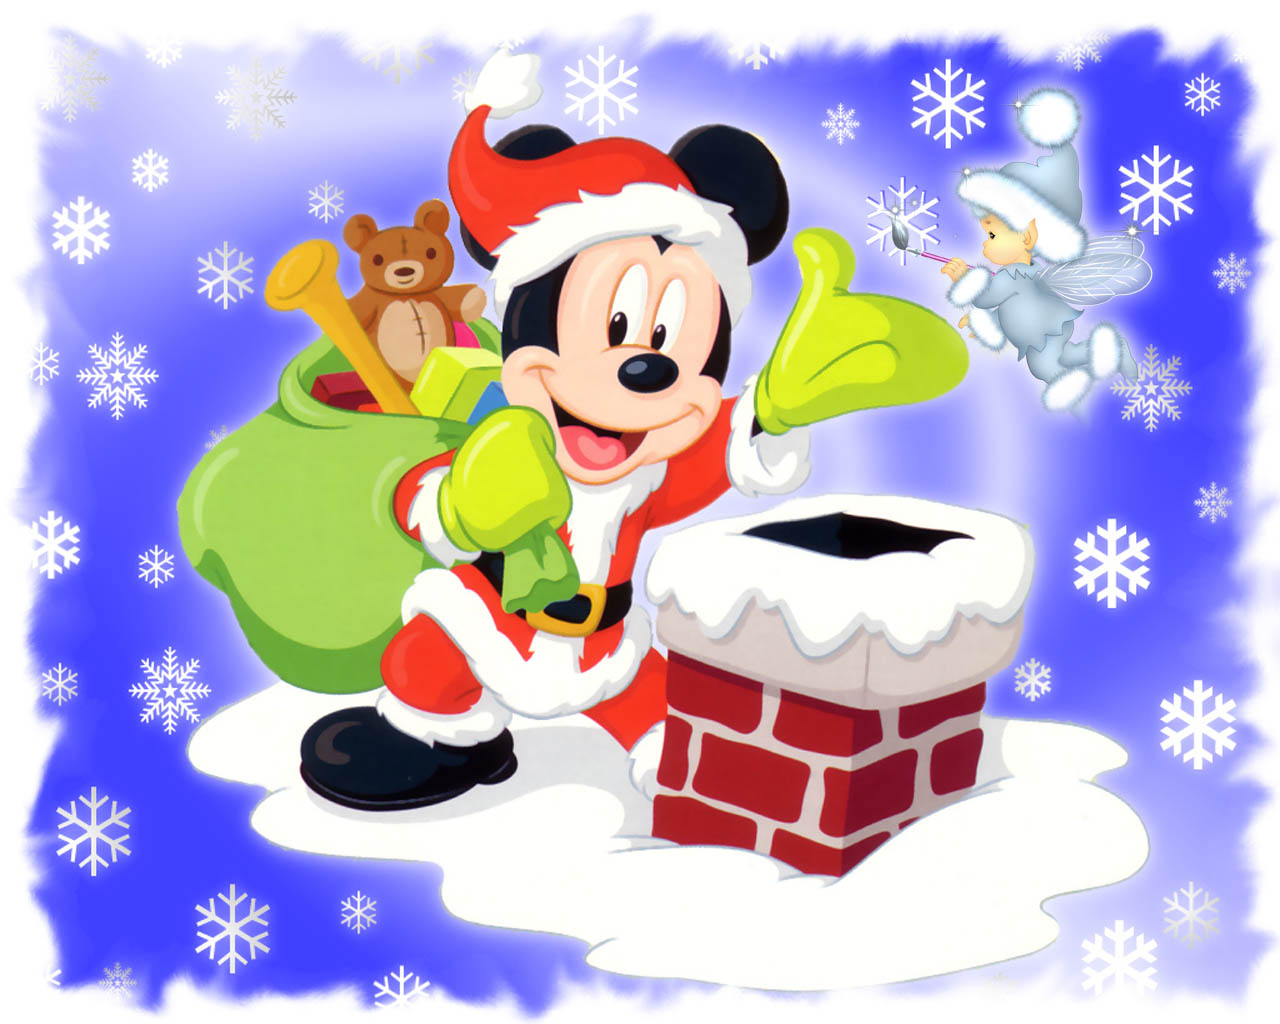 Mickey mouse santa wallpaper